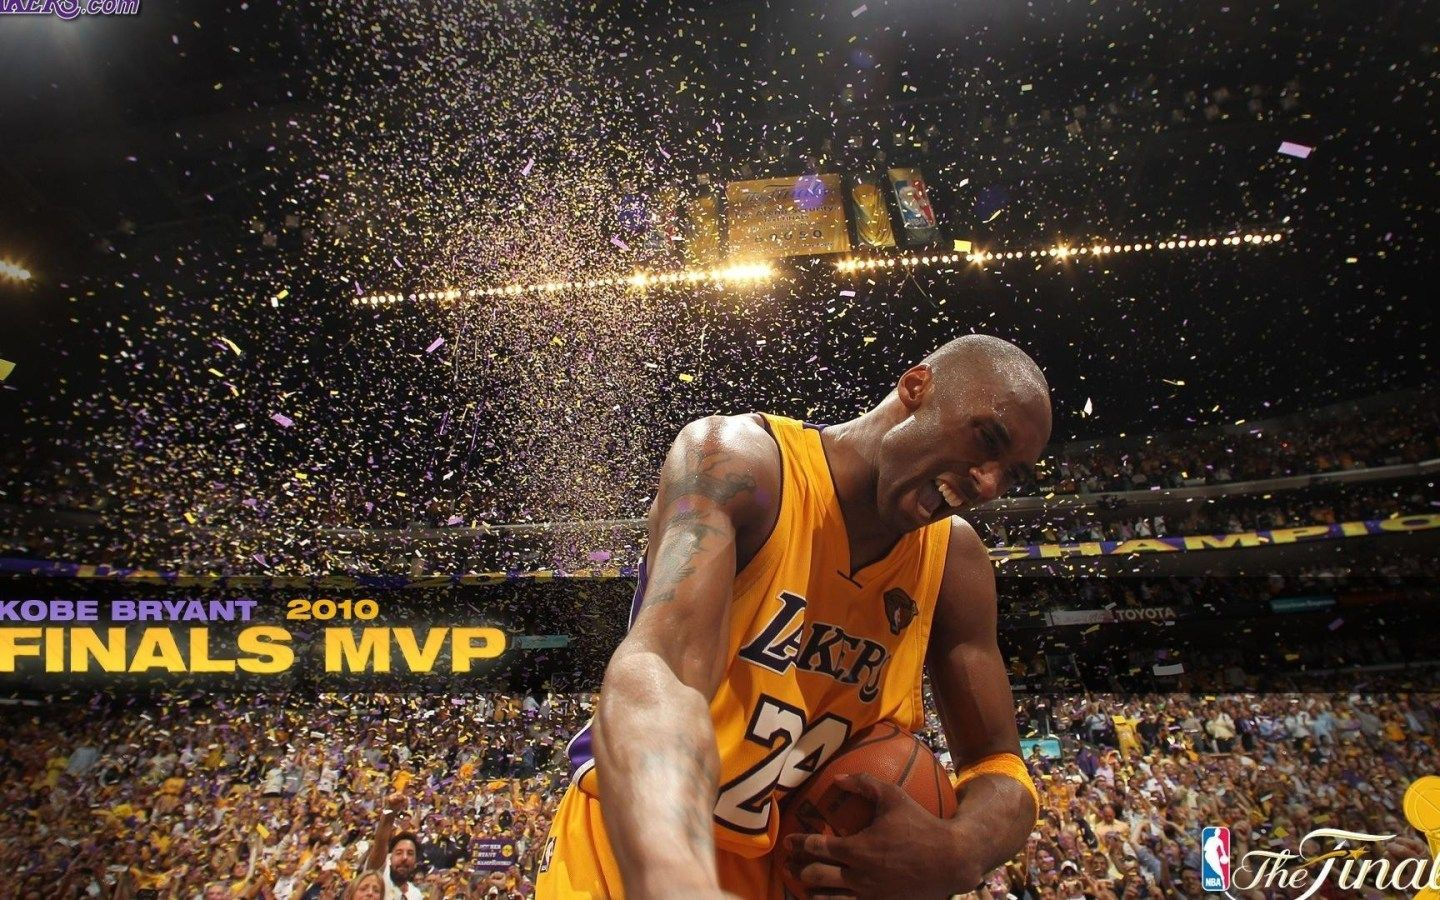 Kobe Bryant Wallpaper Hd Kobe bryant wallpaper, Kobe